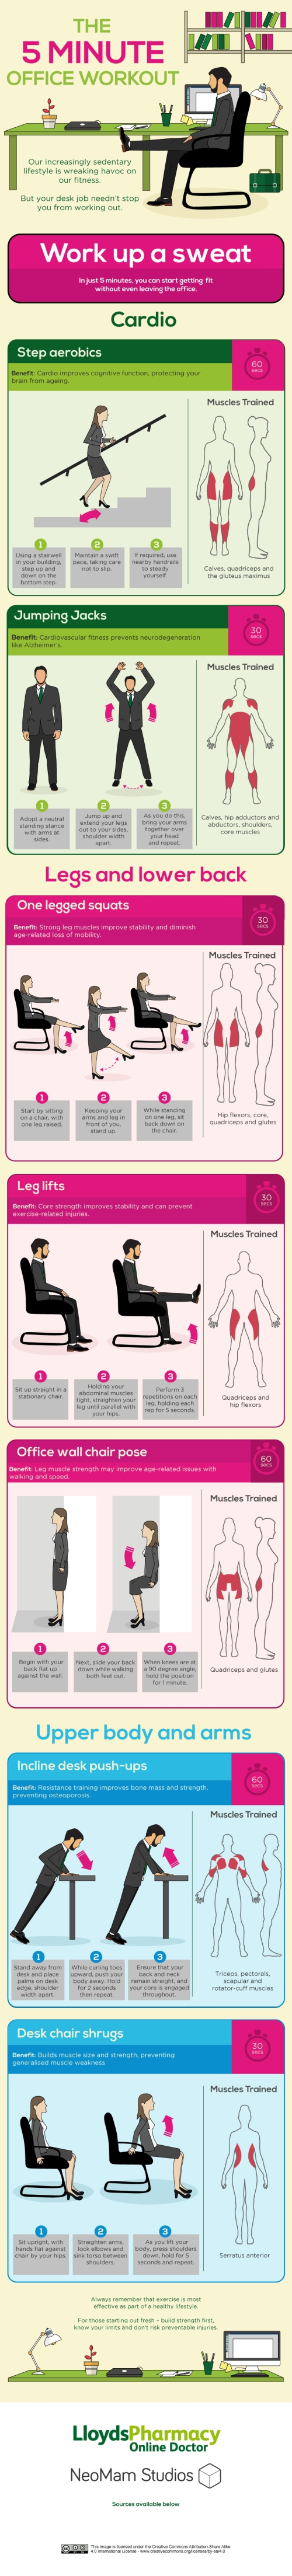 The-5-Minute-Office-Workout-V3